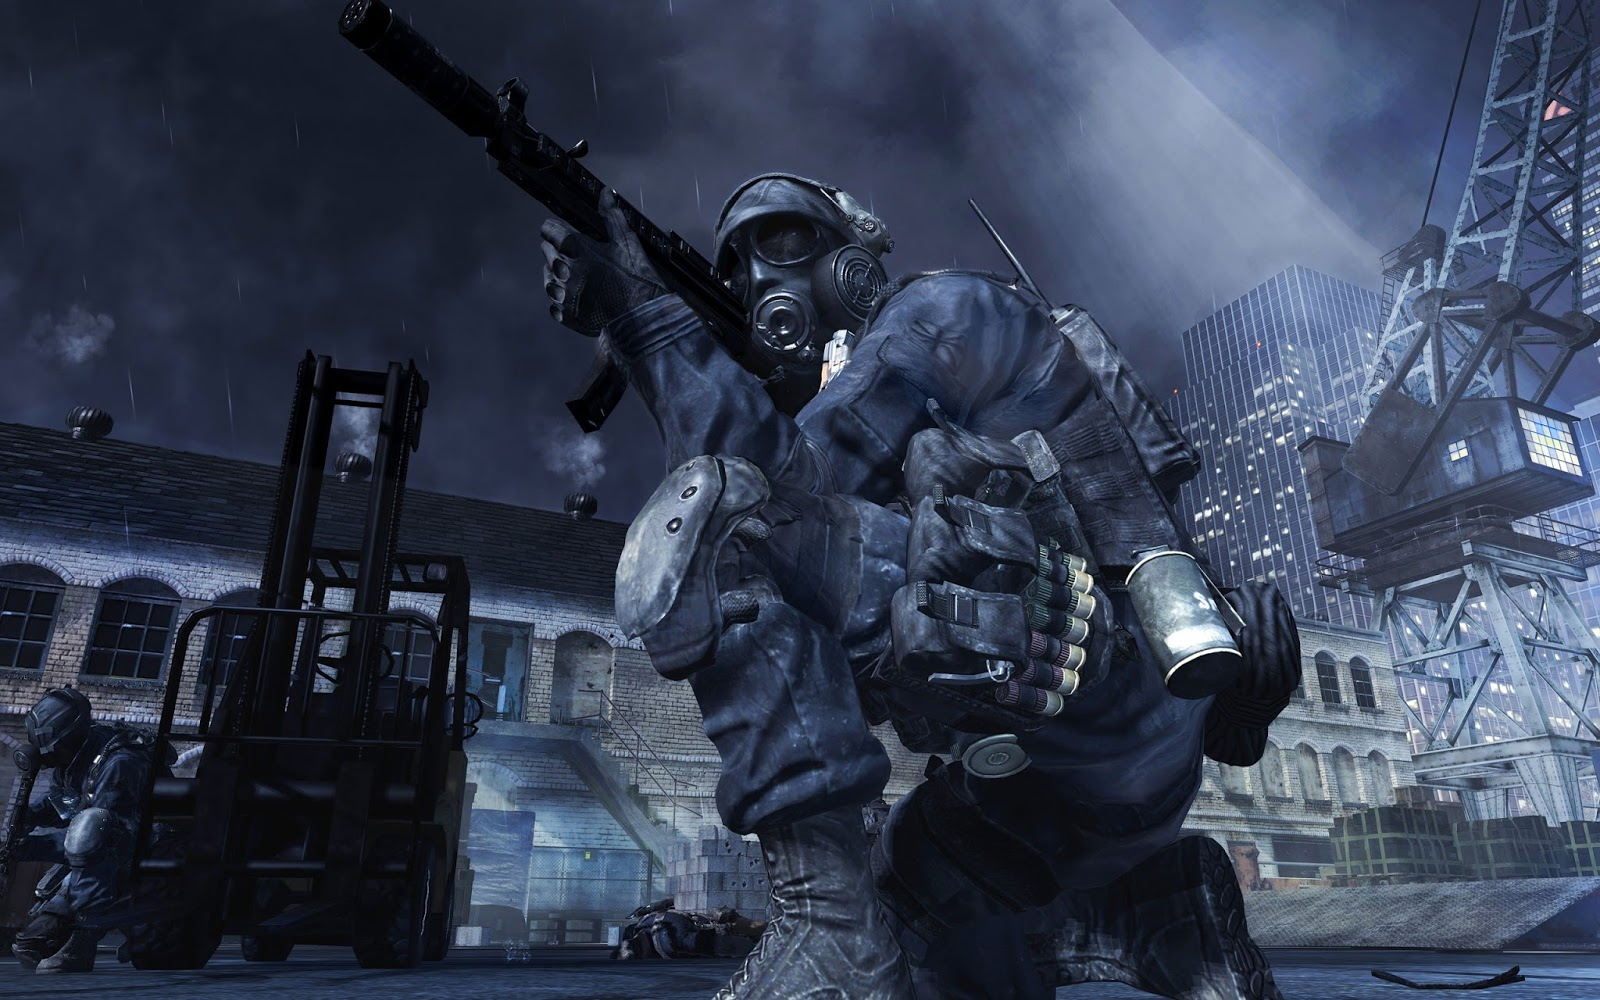 Call Of Duty 4 Modern Warfare Number 1 FPS Game In History